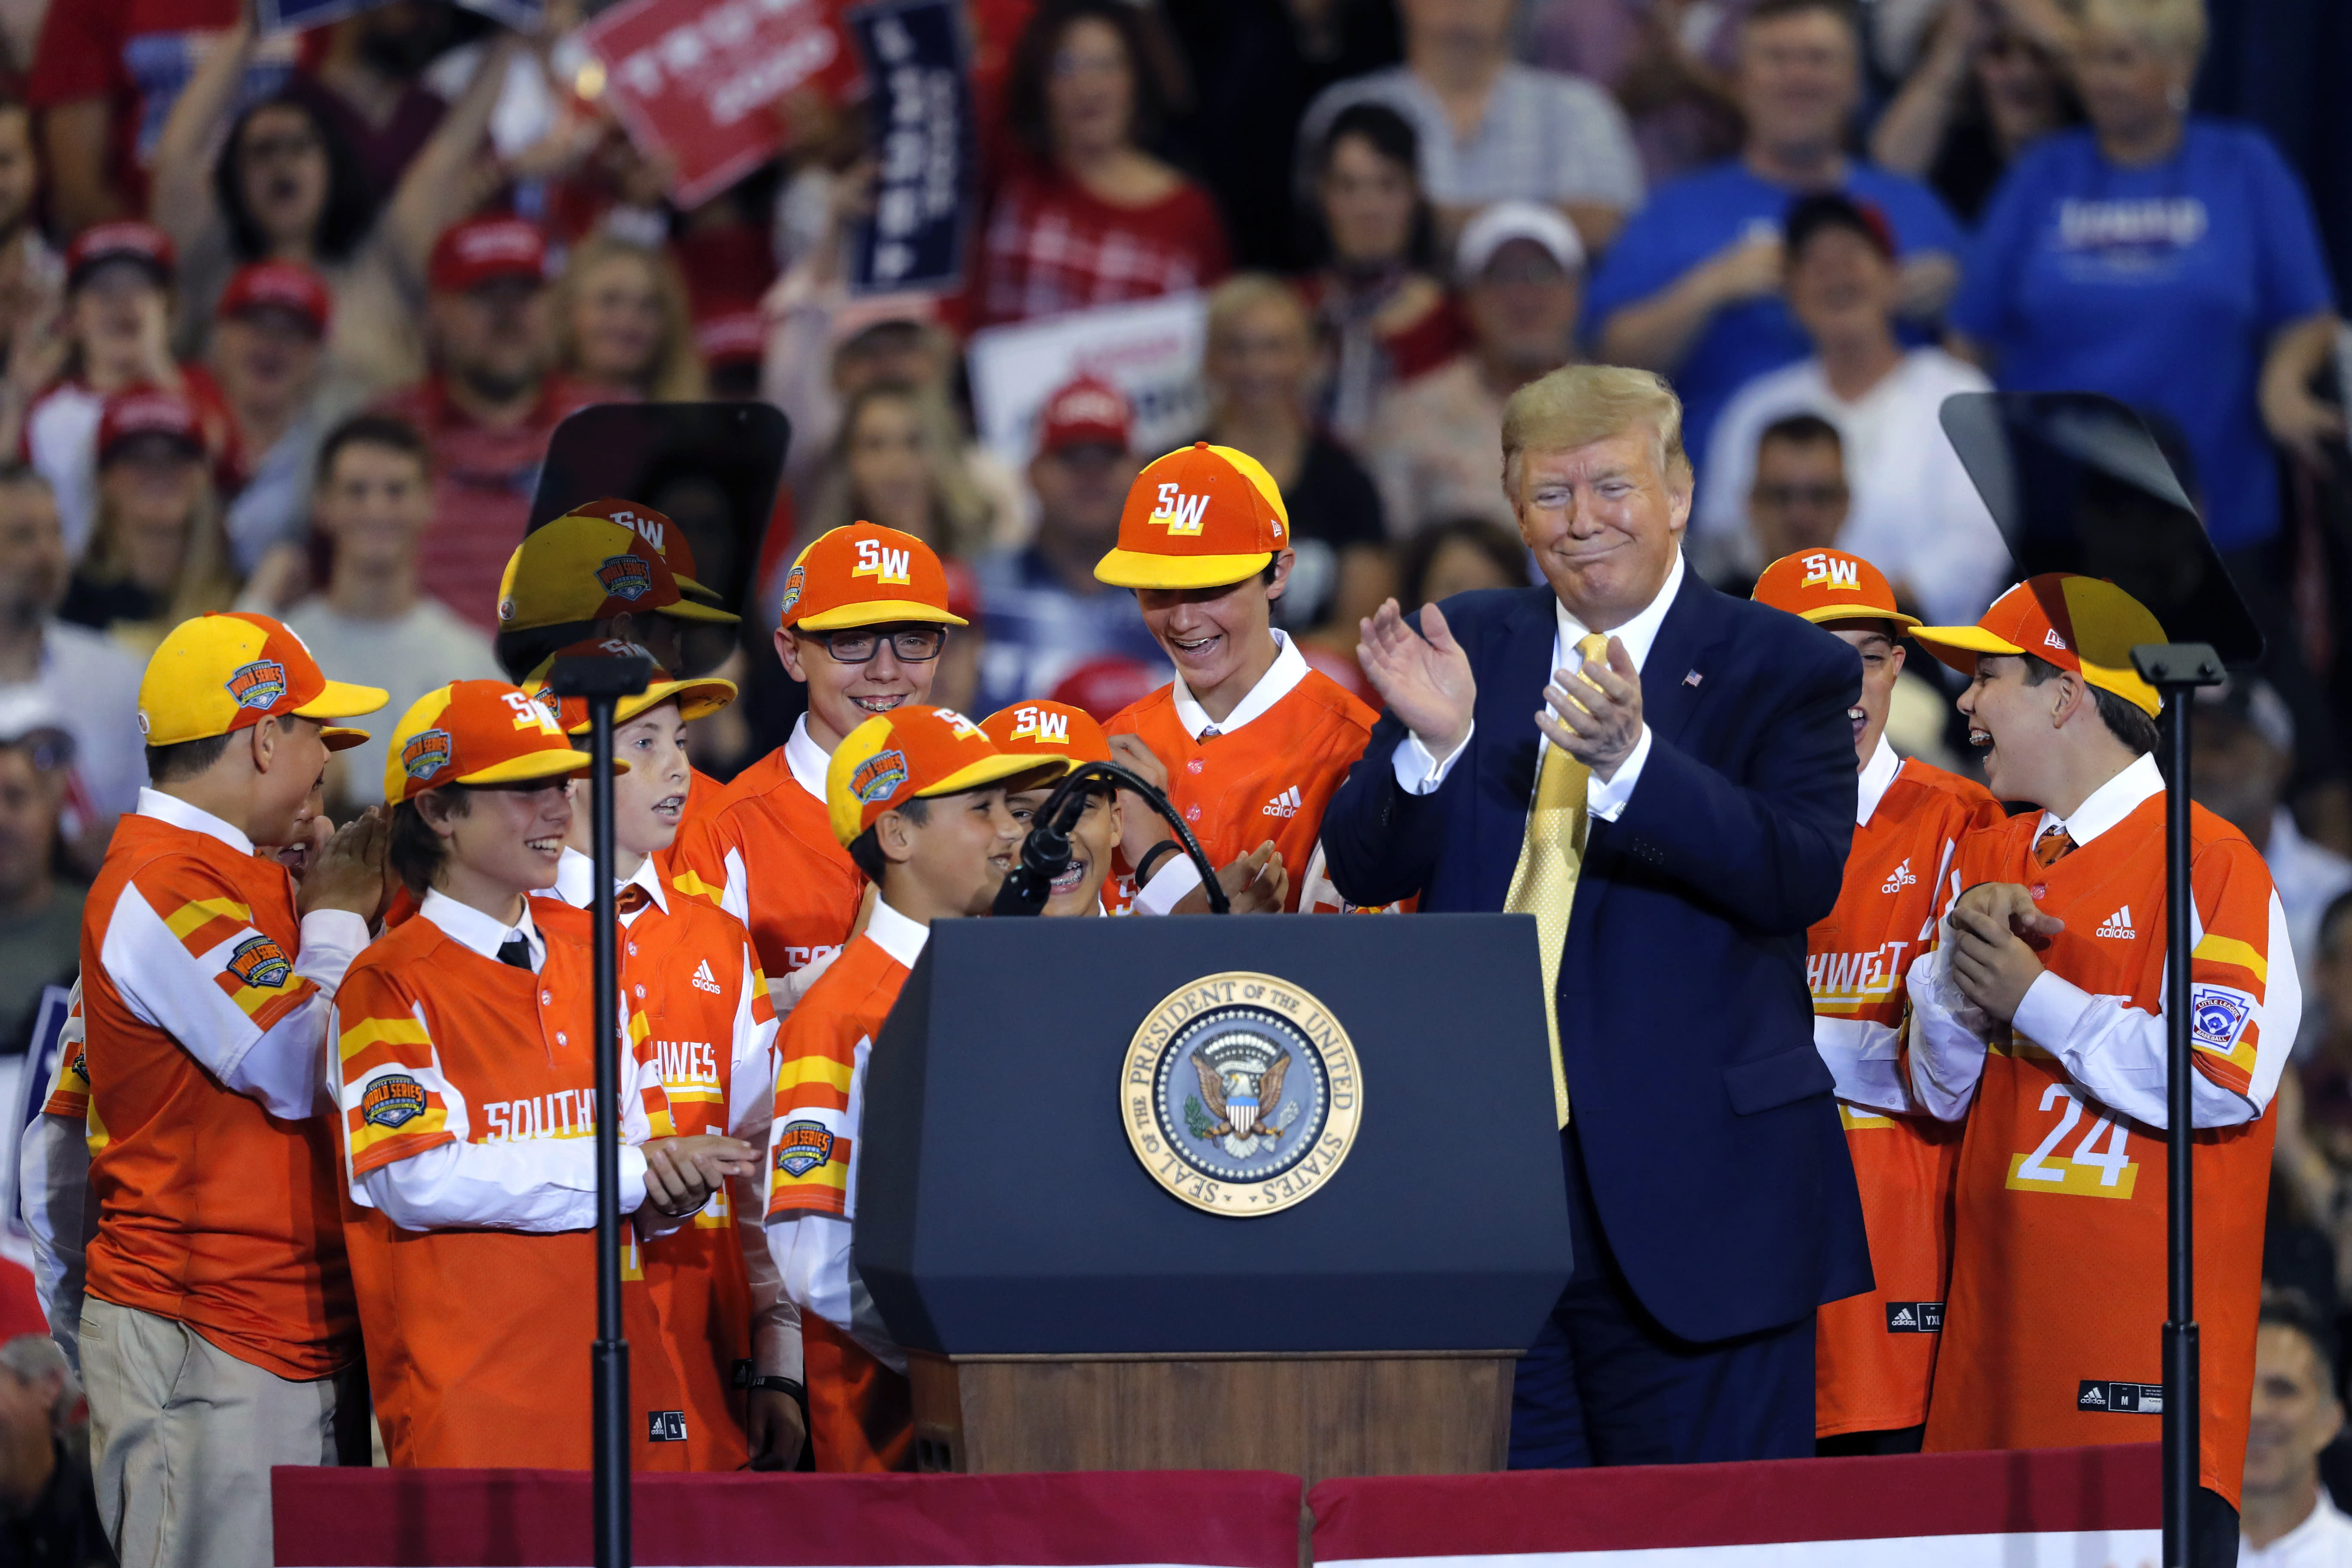 President Donald Trump introduces the reigning Little League World Series championship team from River Ridge, La., during his campaign rally in Lake Charles, La., Friday, Oct. 11, 2019. The team visited the White House earlier in the day, and the President flew them back to Louisiana on Air Force One. (AP Photo/Gerald Herbert)